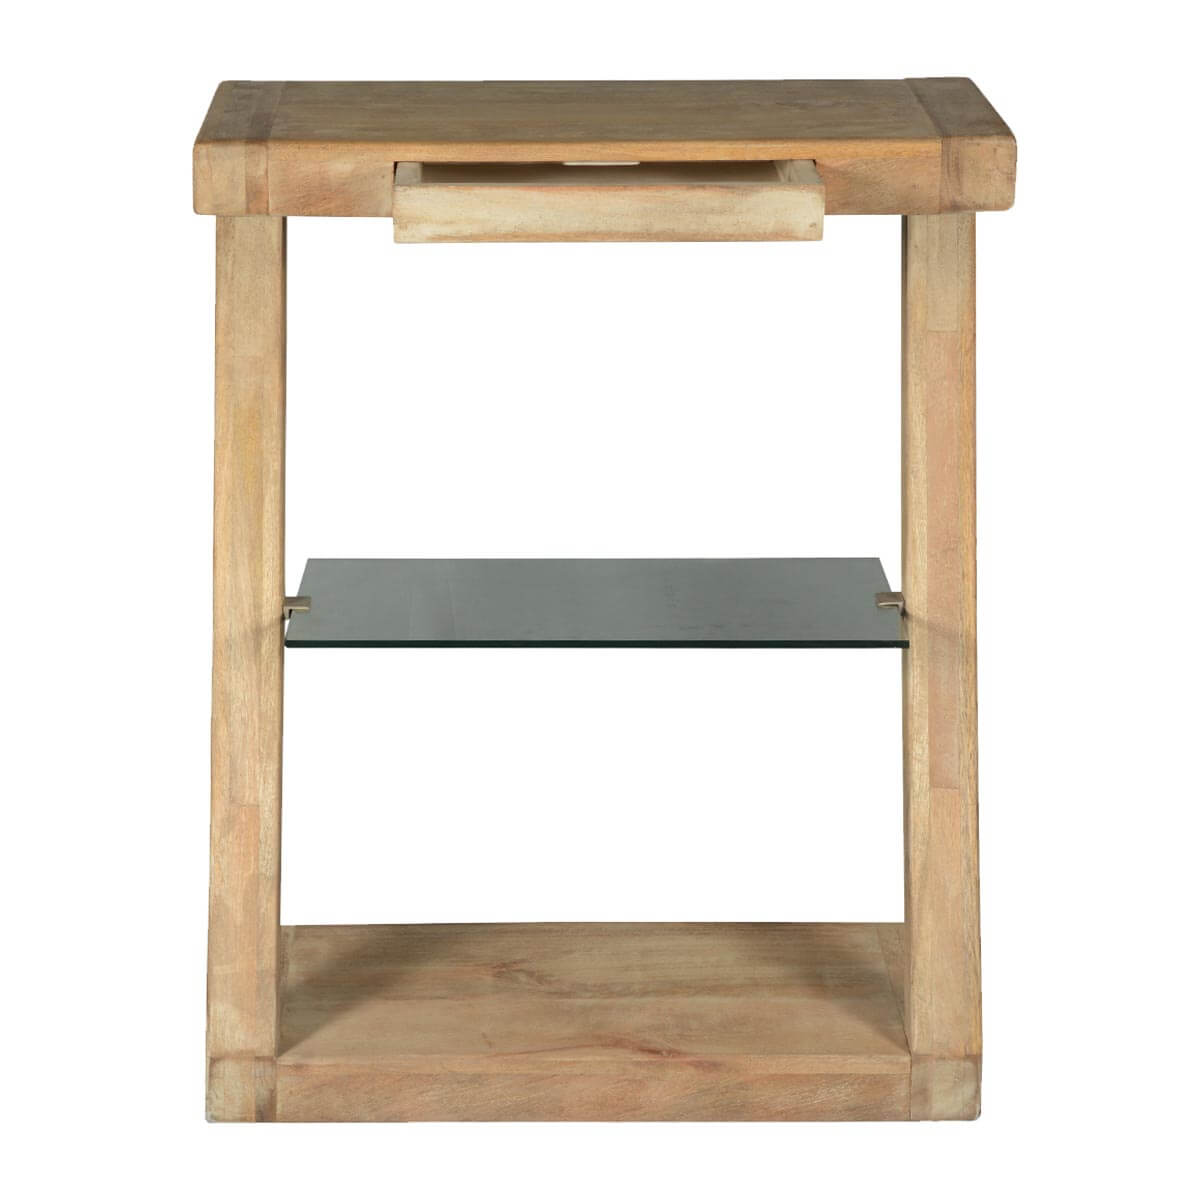 Very Impressive portraiture of  Night Stands Contemporary Frosted Z Mango Wood Desk Artist Work Table with #AA8721 color and 1200x1200 pixels